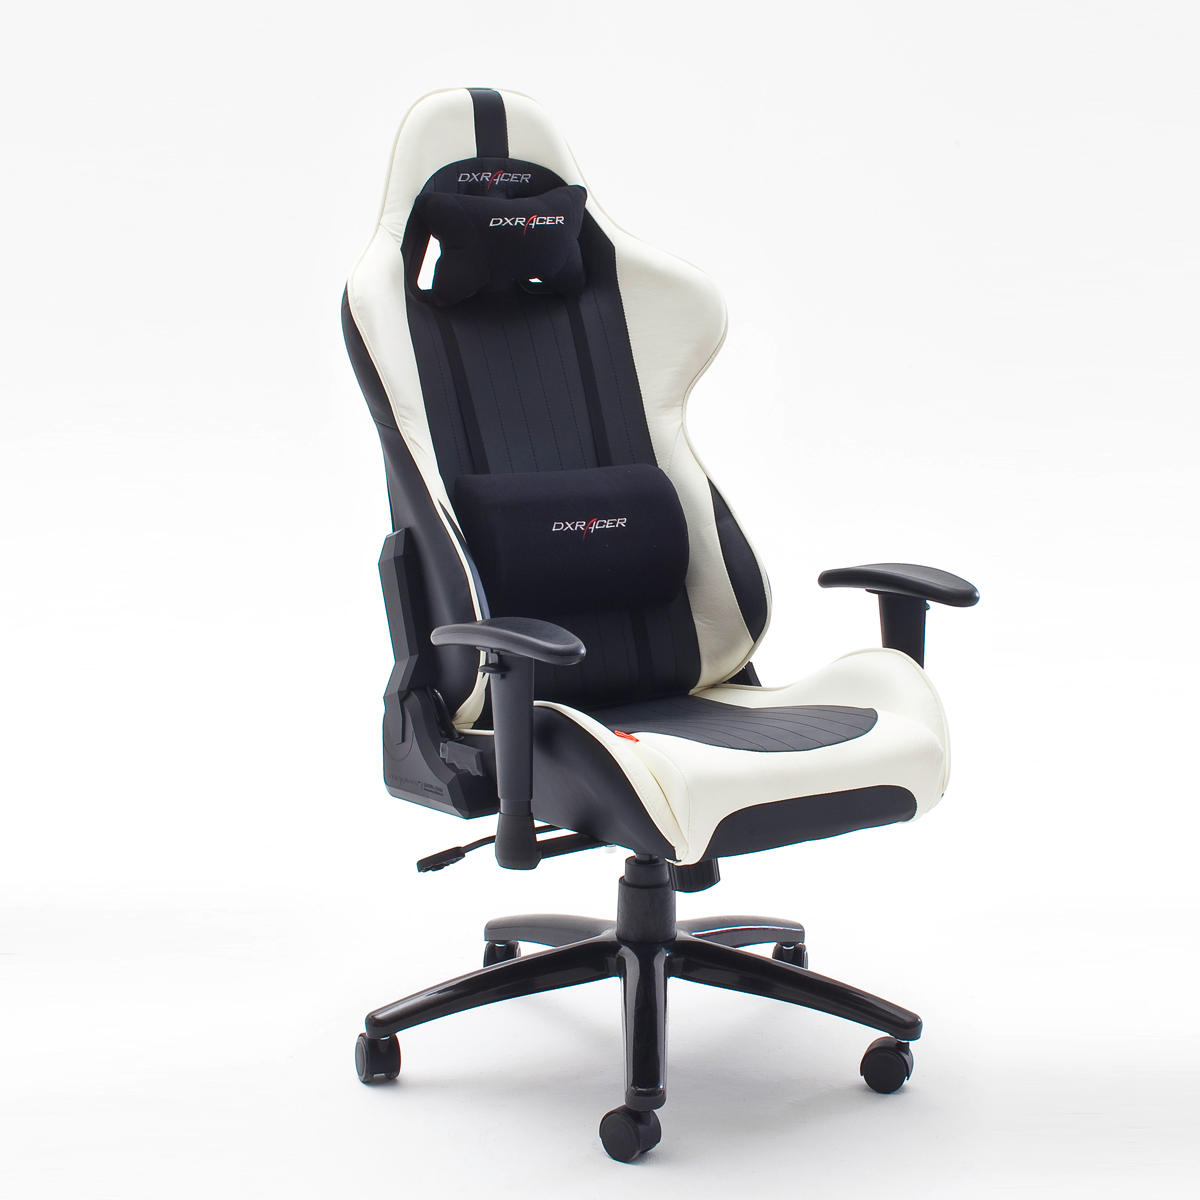 schreibtischstuhl dx racer design b rostuhl game chair verschiedene ausf hrungen ebay. Black Bedroom Furniture Sets. Home Design Ideas